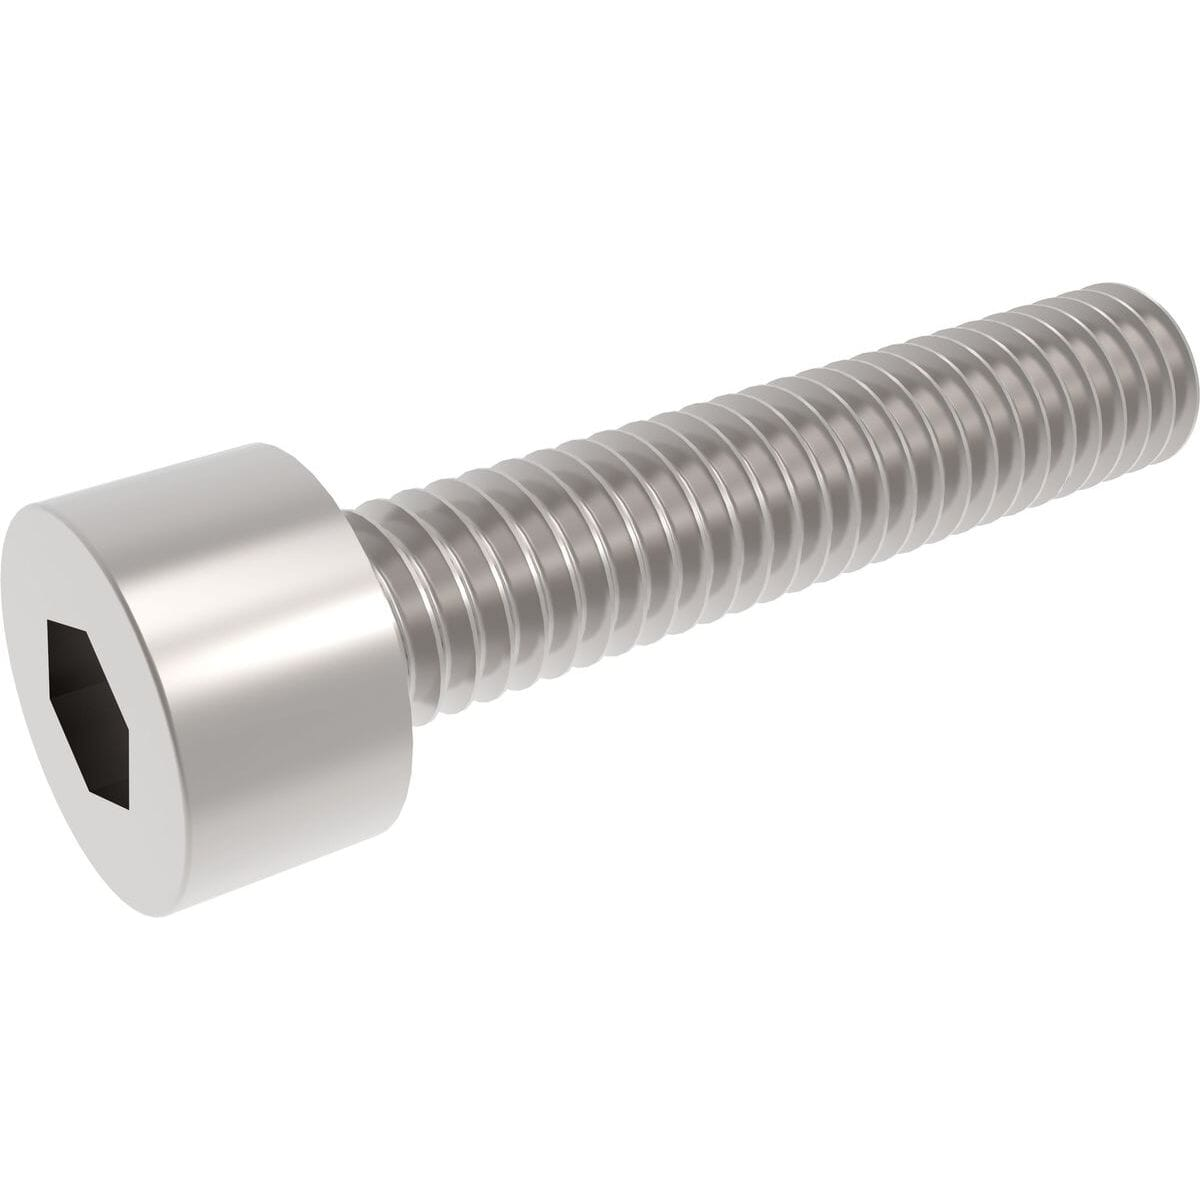 M5 x 10mm Full Thread Cap Head Screws (DIN 912) - High Tensile Stainless Steel (A4-80)